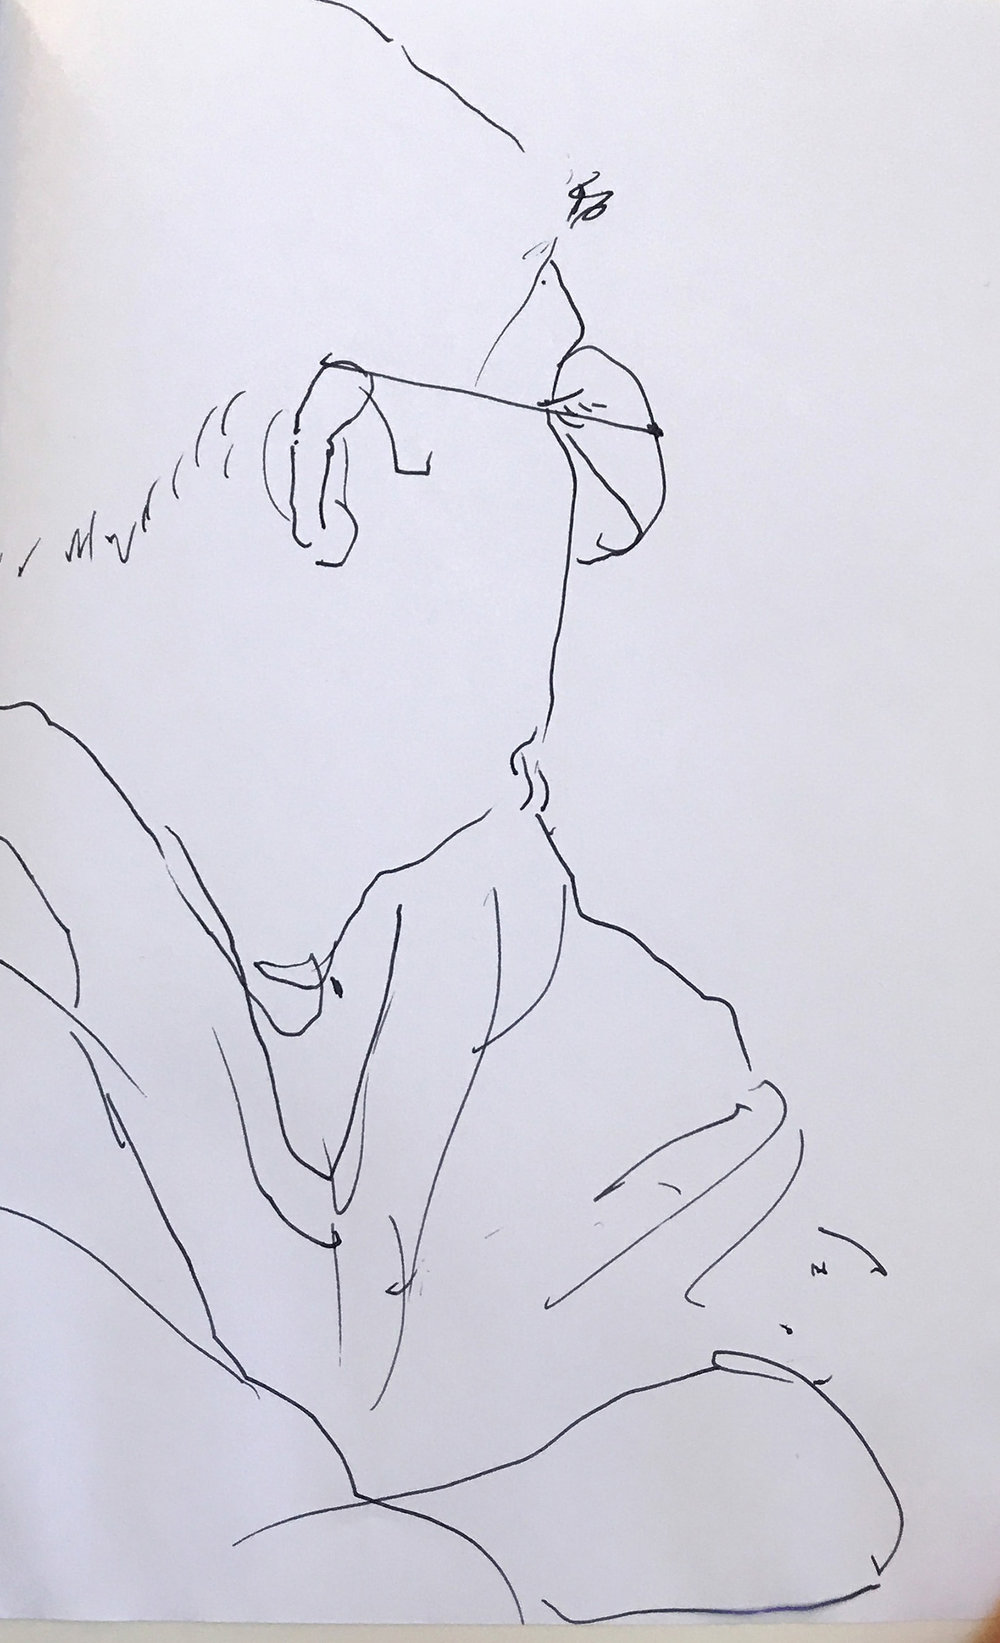 SITE-drawing of man with glasses.jpg